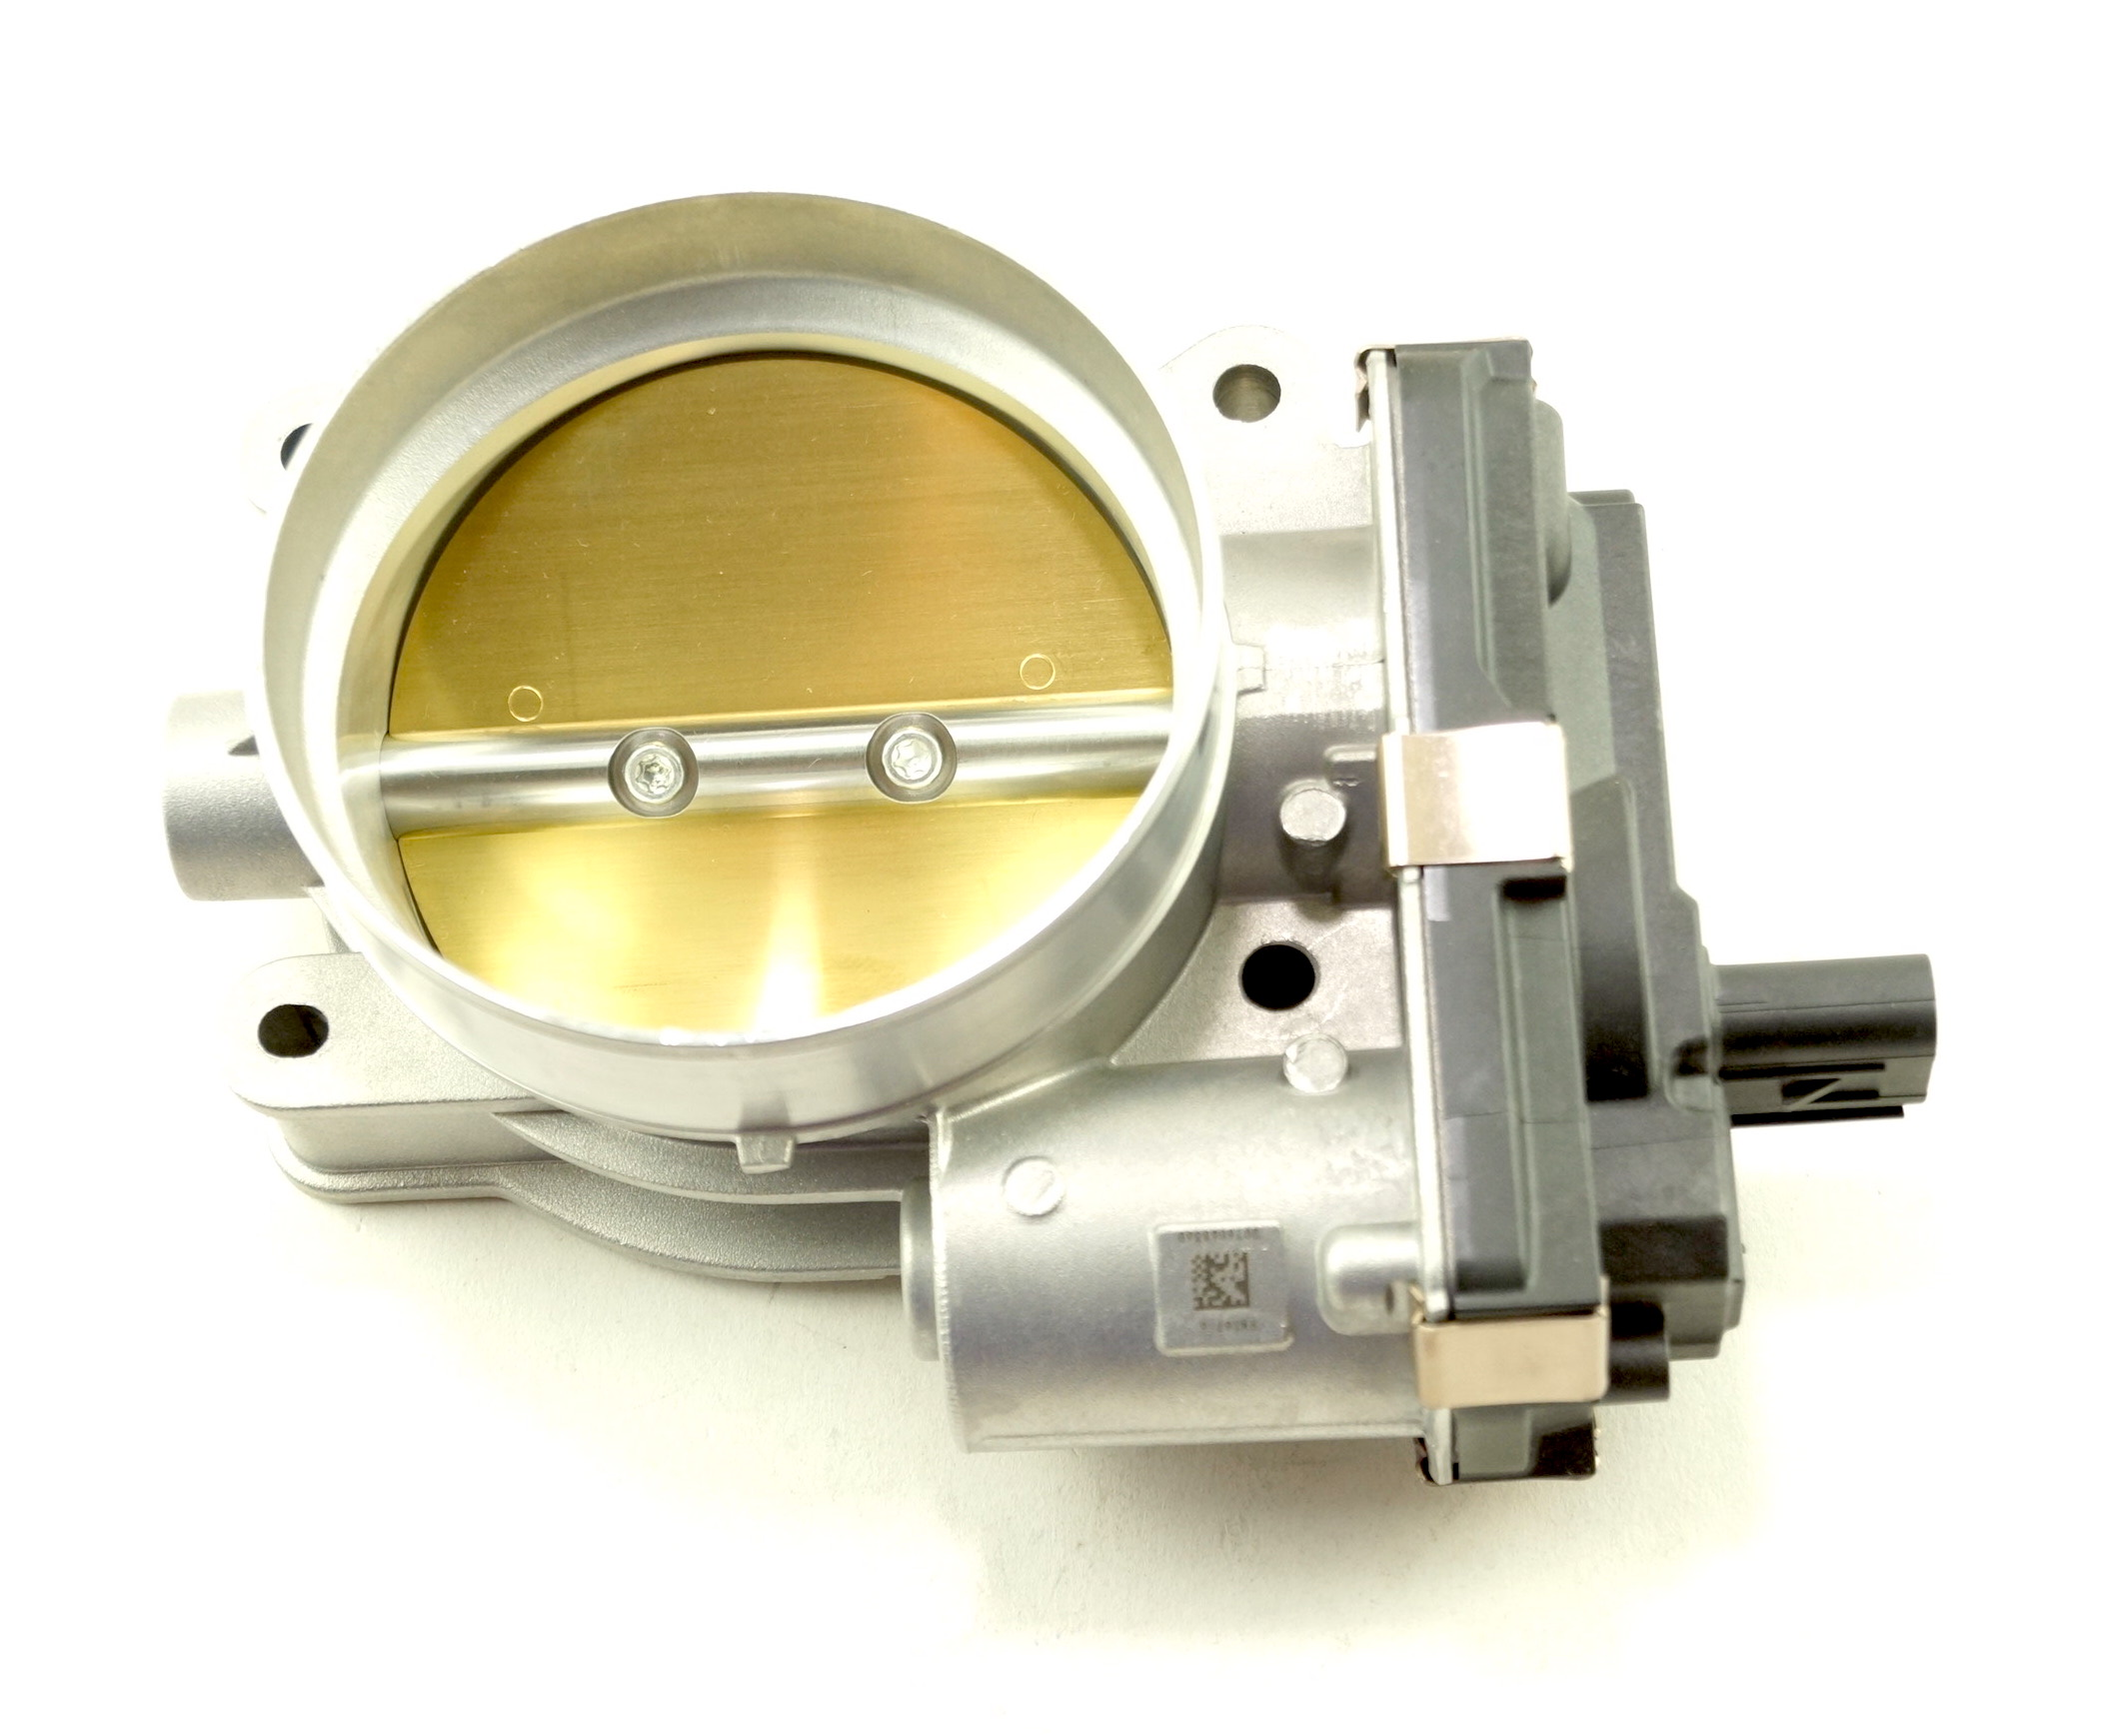 Genuine OEM GR3Z9E926A Ford 15-17 Mustang Throttle Body New Fast Free Shipping - image 2